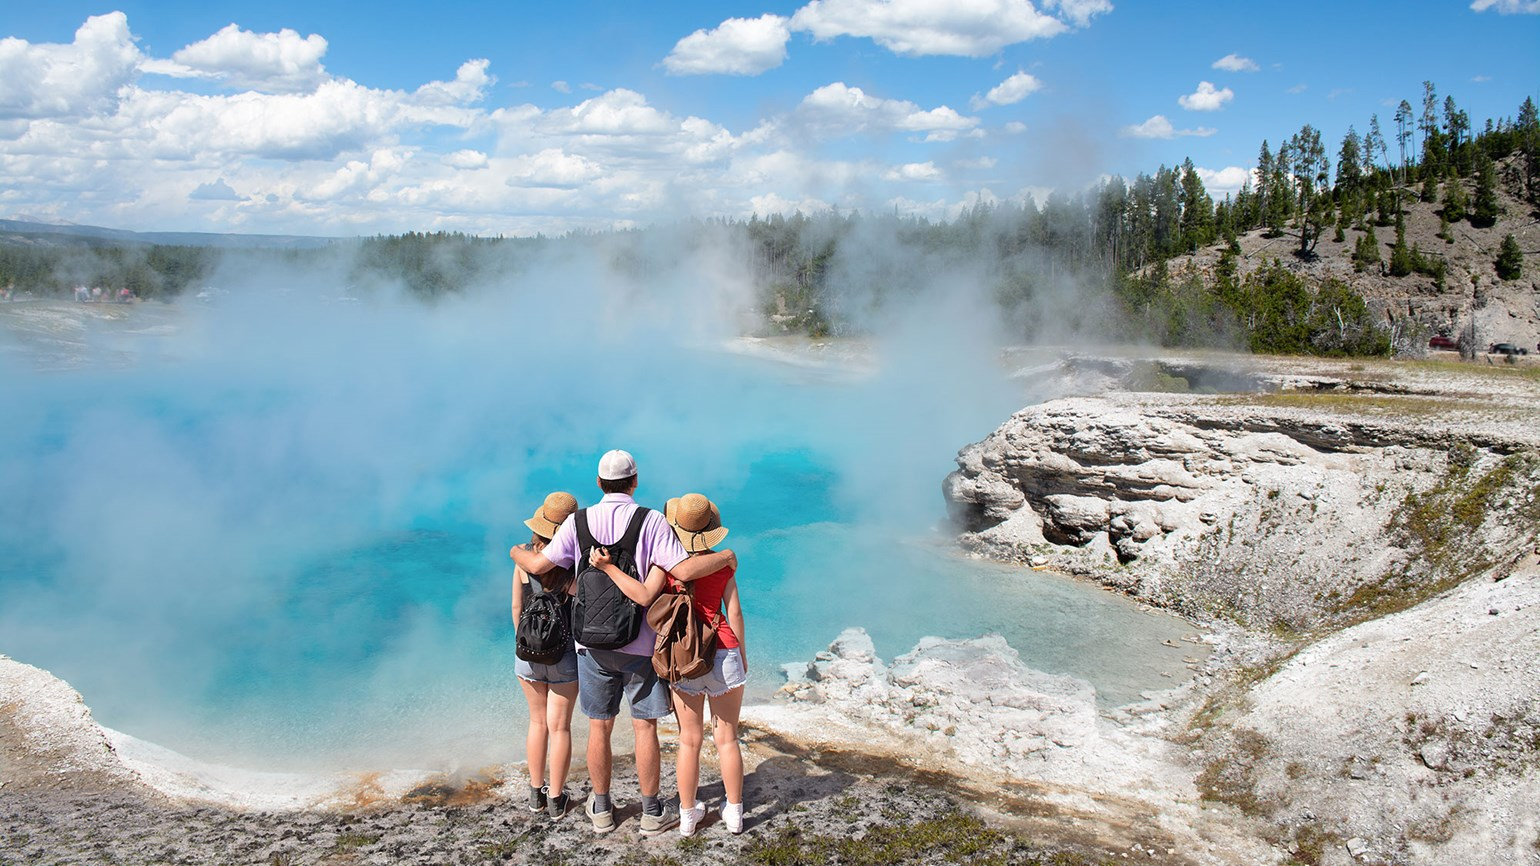 Yellowstone Geyser, Family at Midway Geyser Basin [Credit: Margaret W./Shutterstock.com]